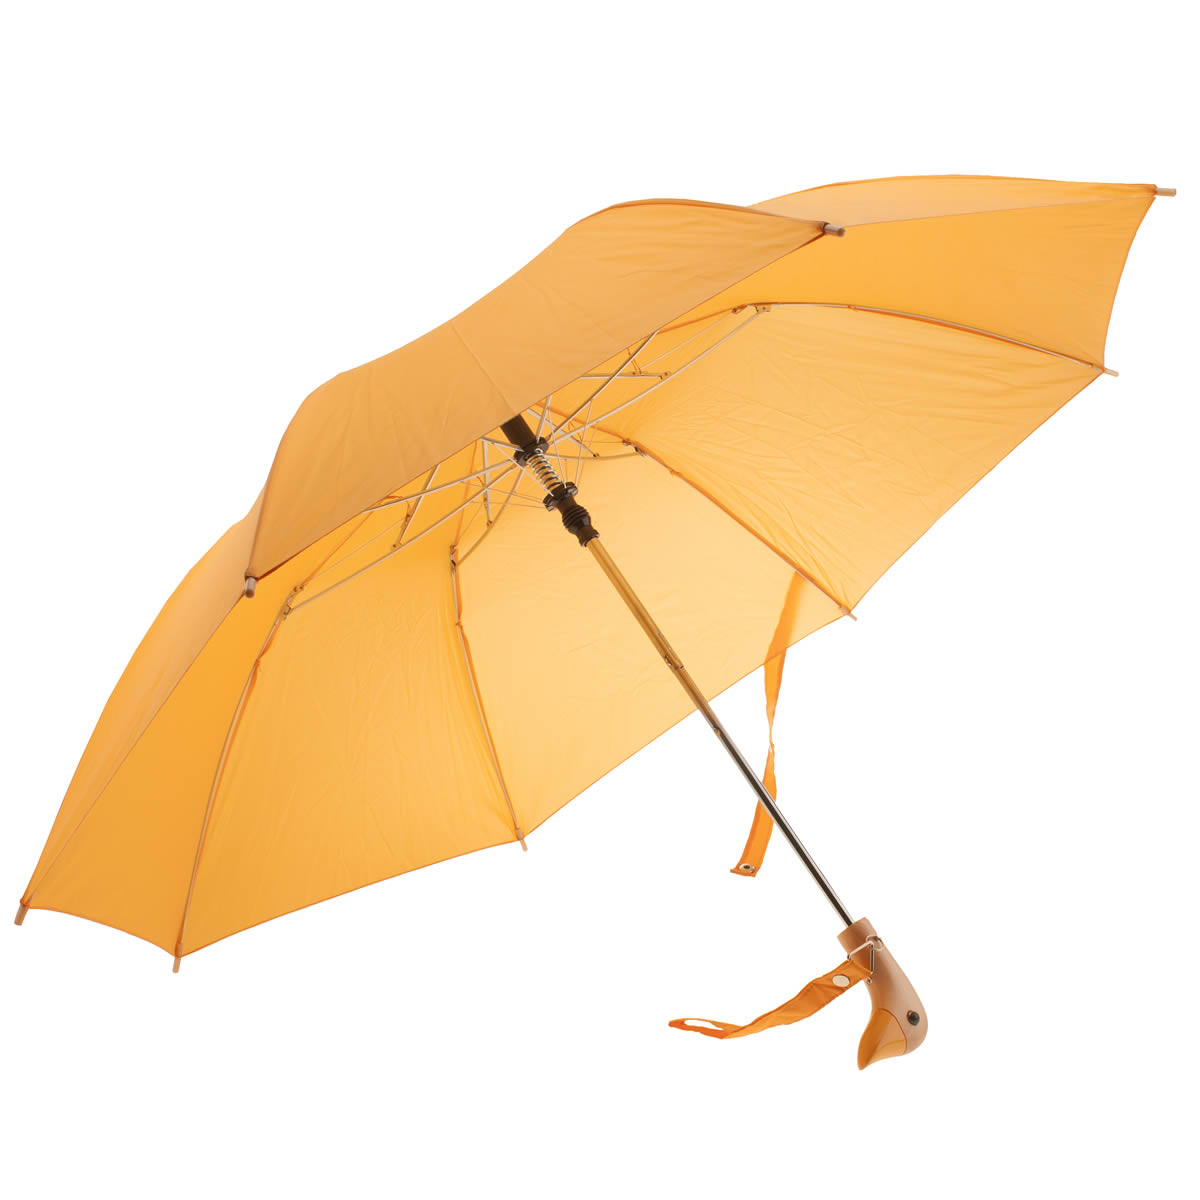 original duckhead Original Duckhead Yellow Umbrella Accessory